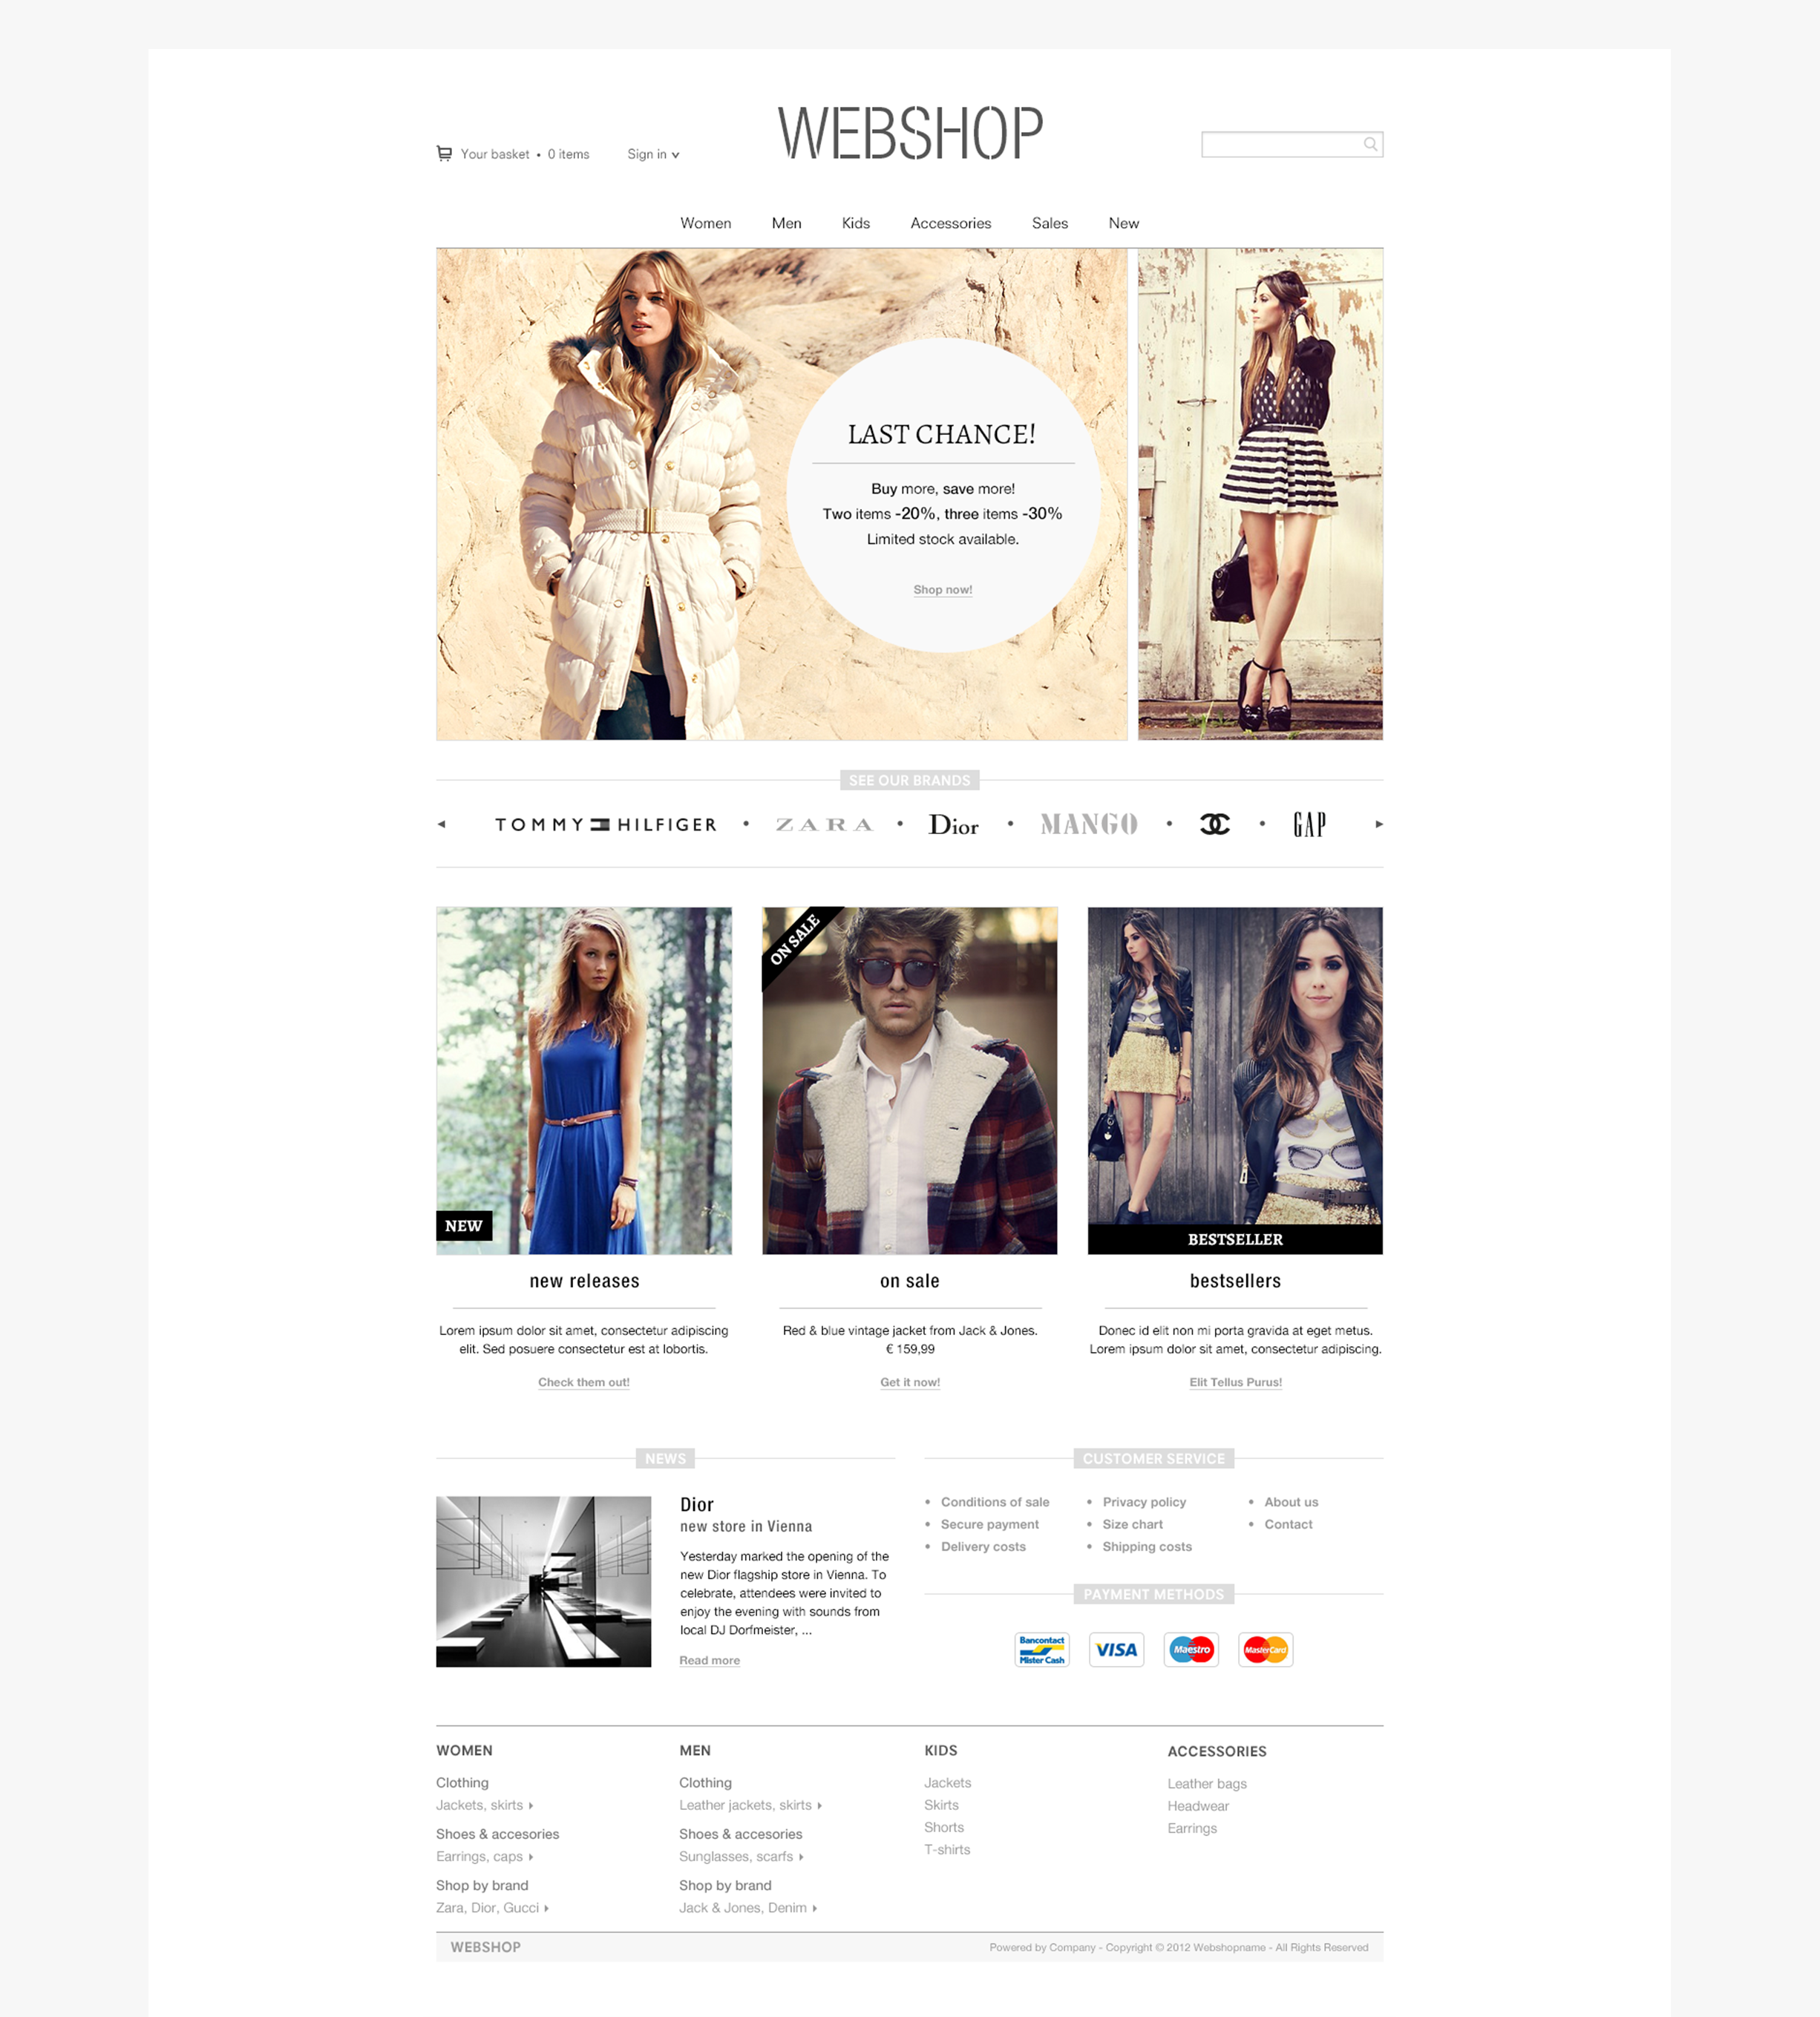 Webshop layout - homepage